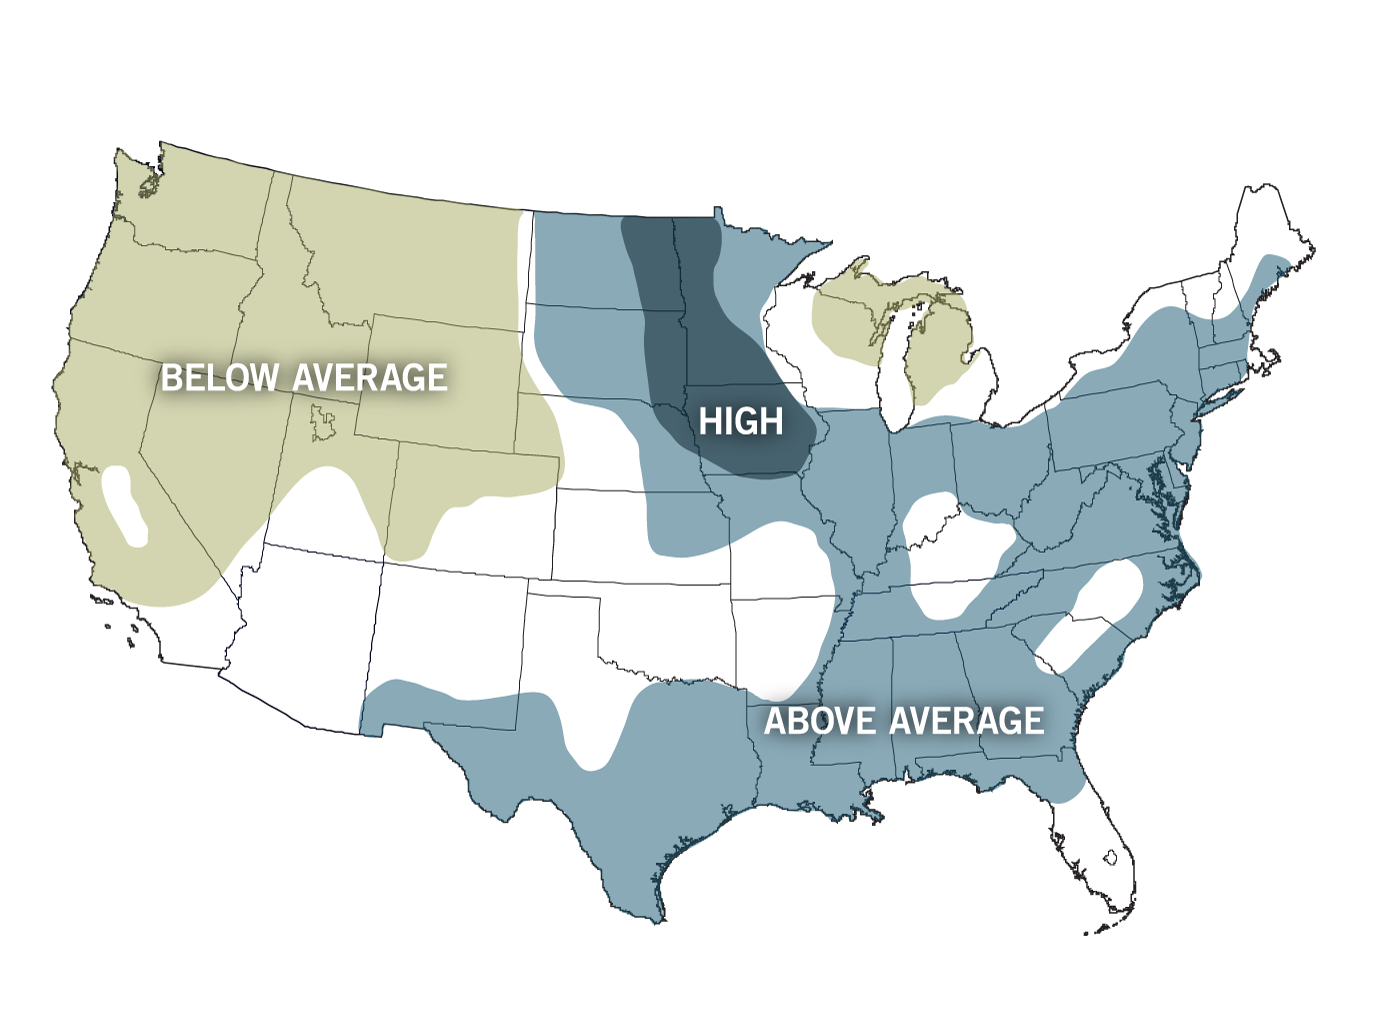 Us Flood Map Global Warming Above average flood risk is forecast for one third of U.S. | NOAA